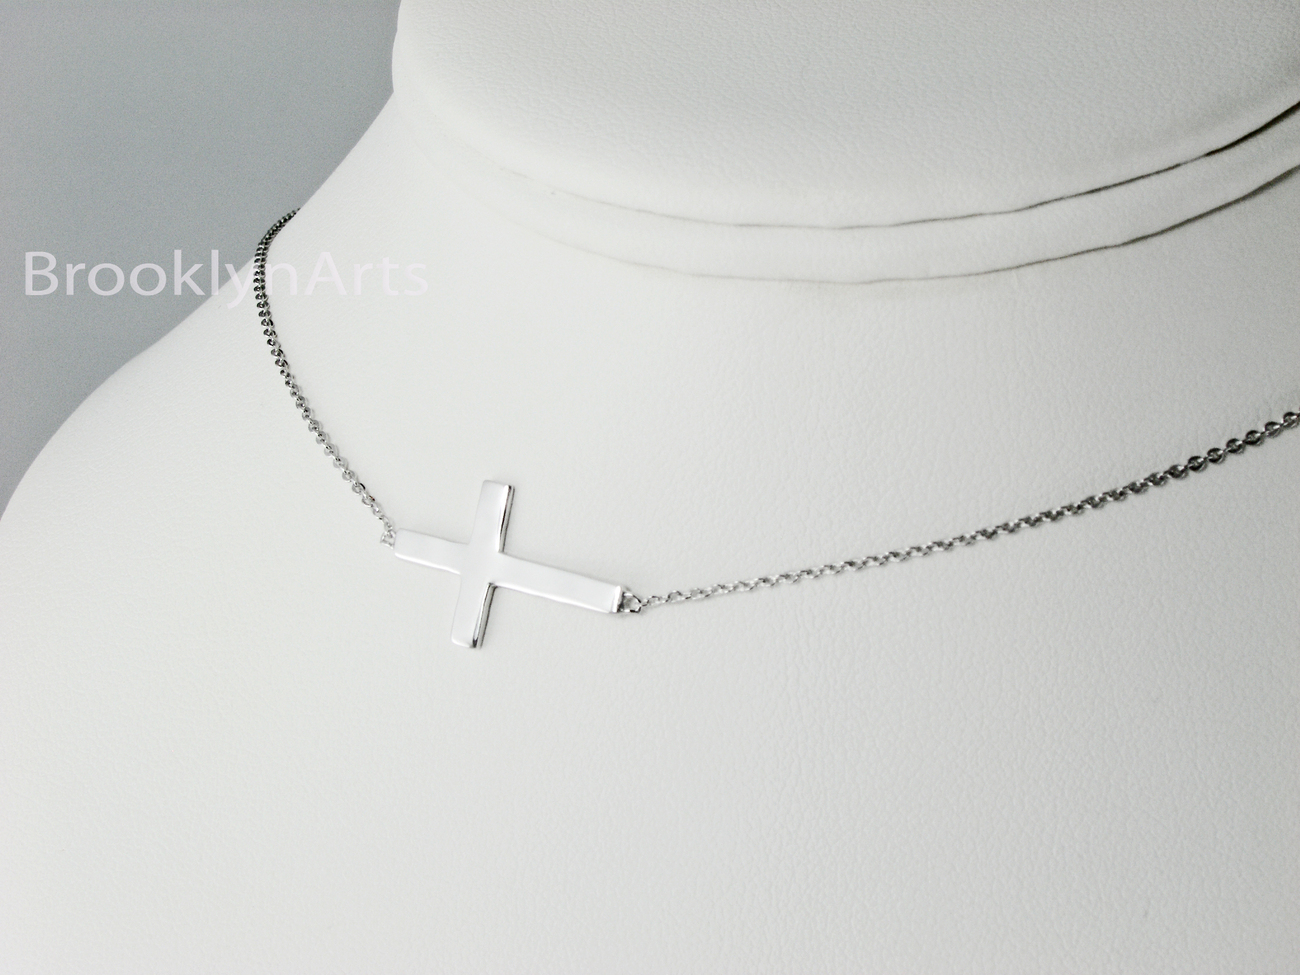 Sterling Silver Sideways Cross Necklace - Kelly Ripa